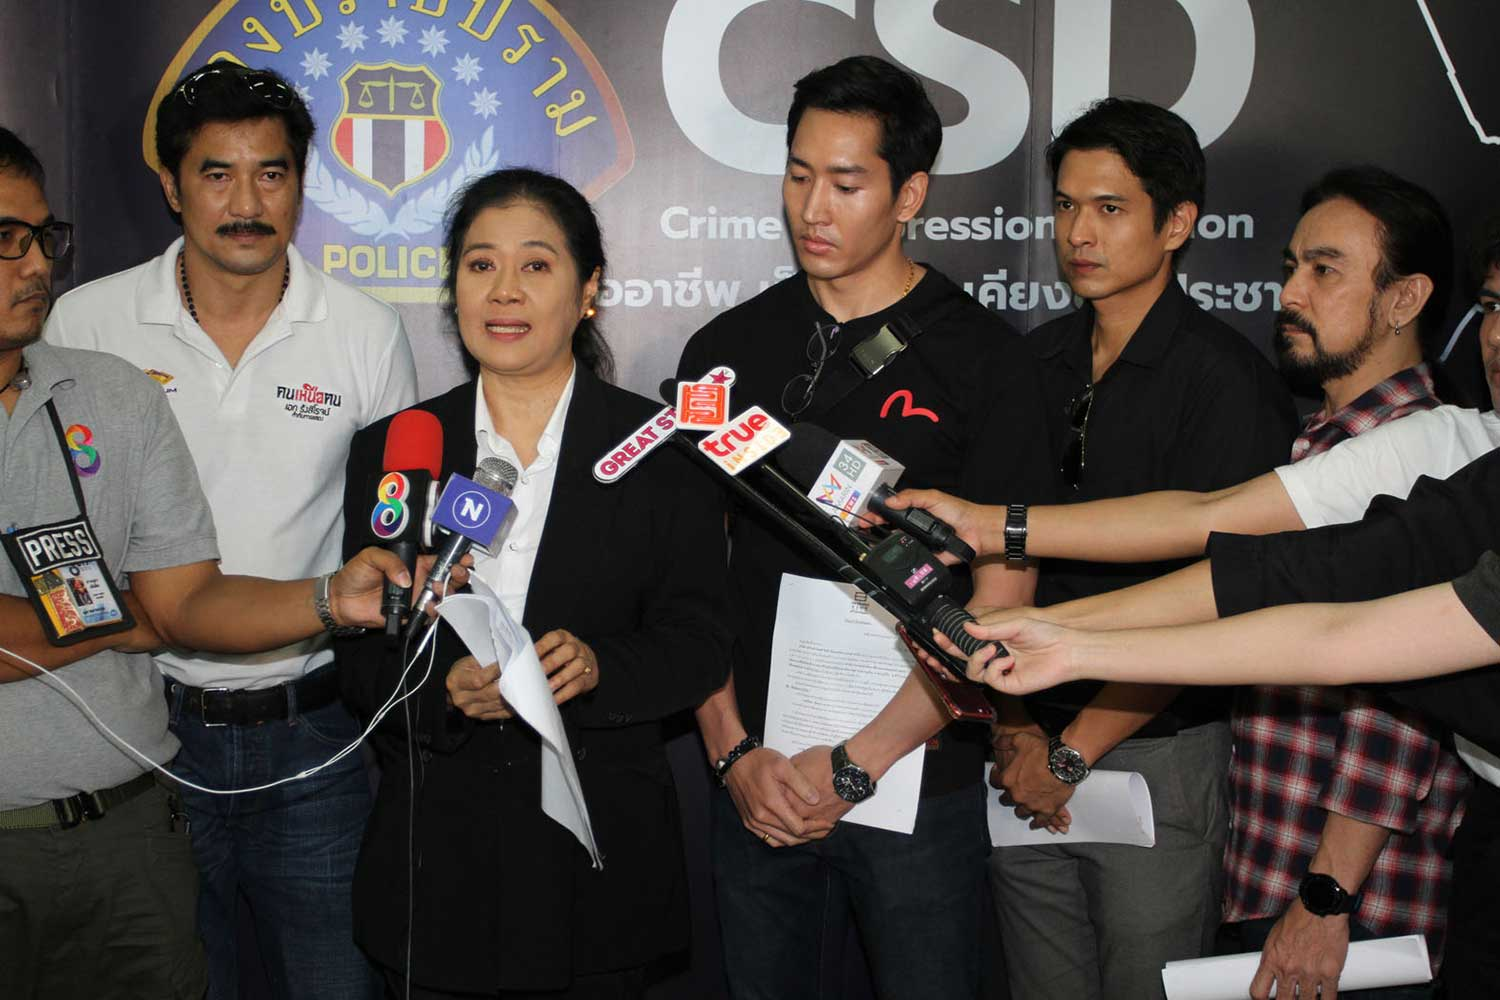 Actress Duanghathai Satthathip speaks to reporters on Thursday after members of the cast of